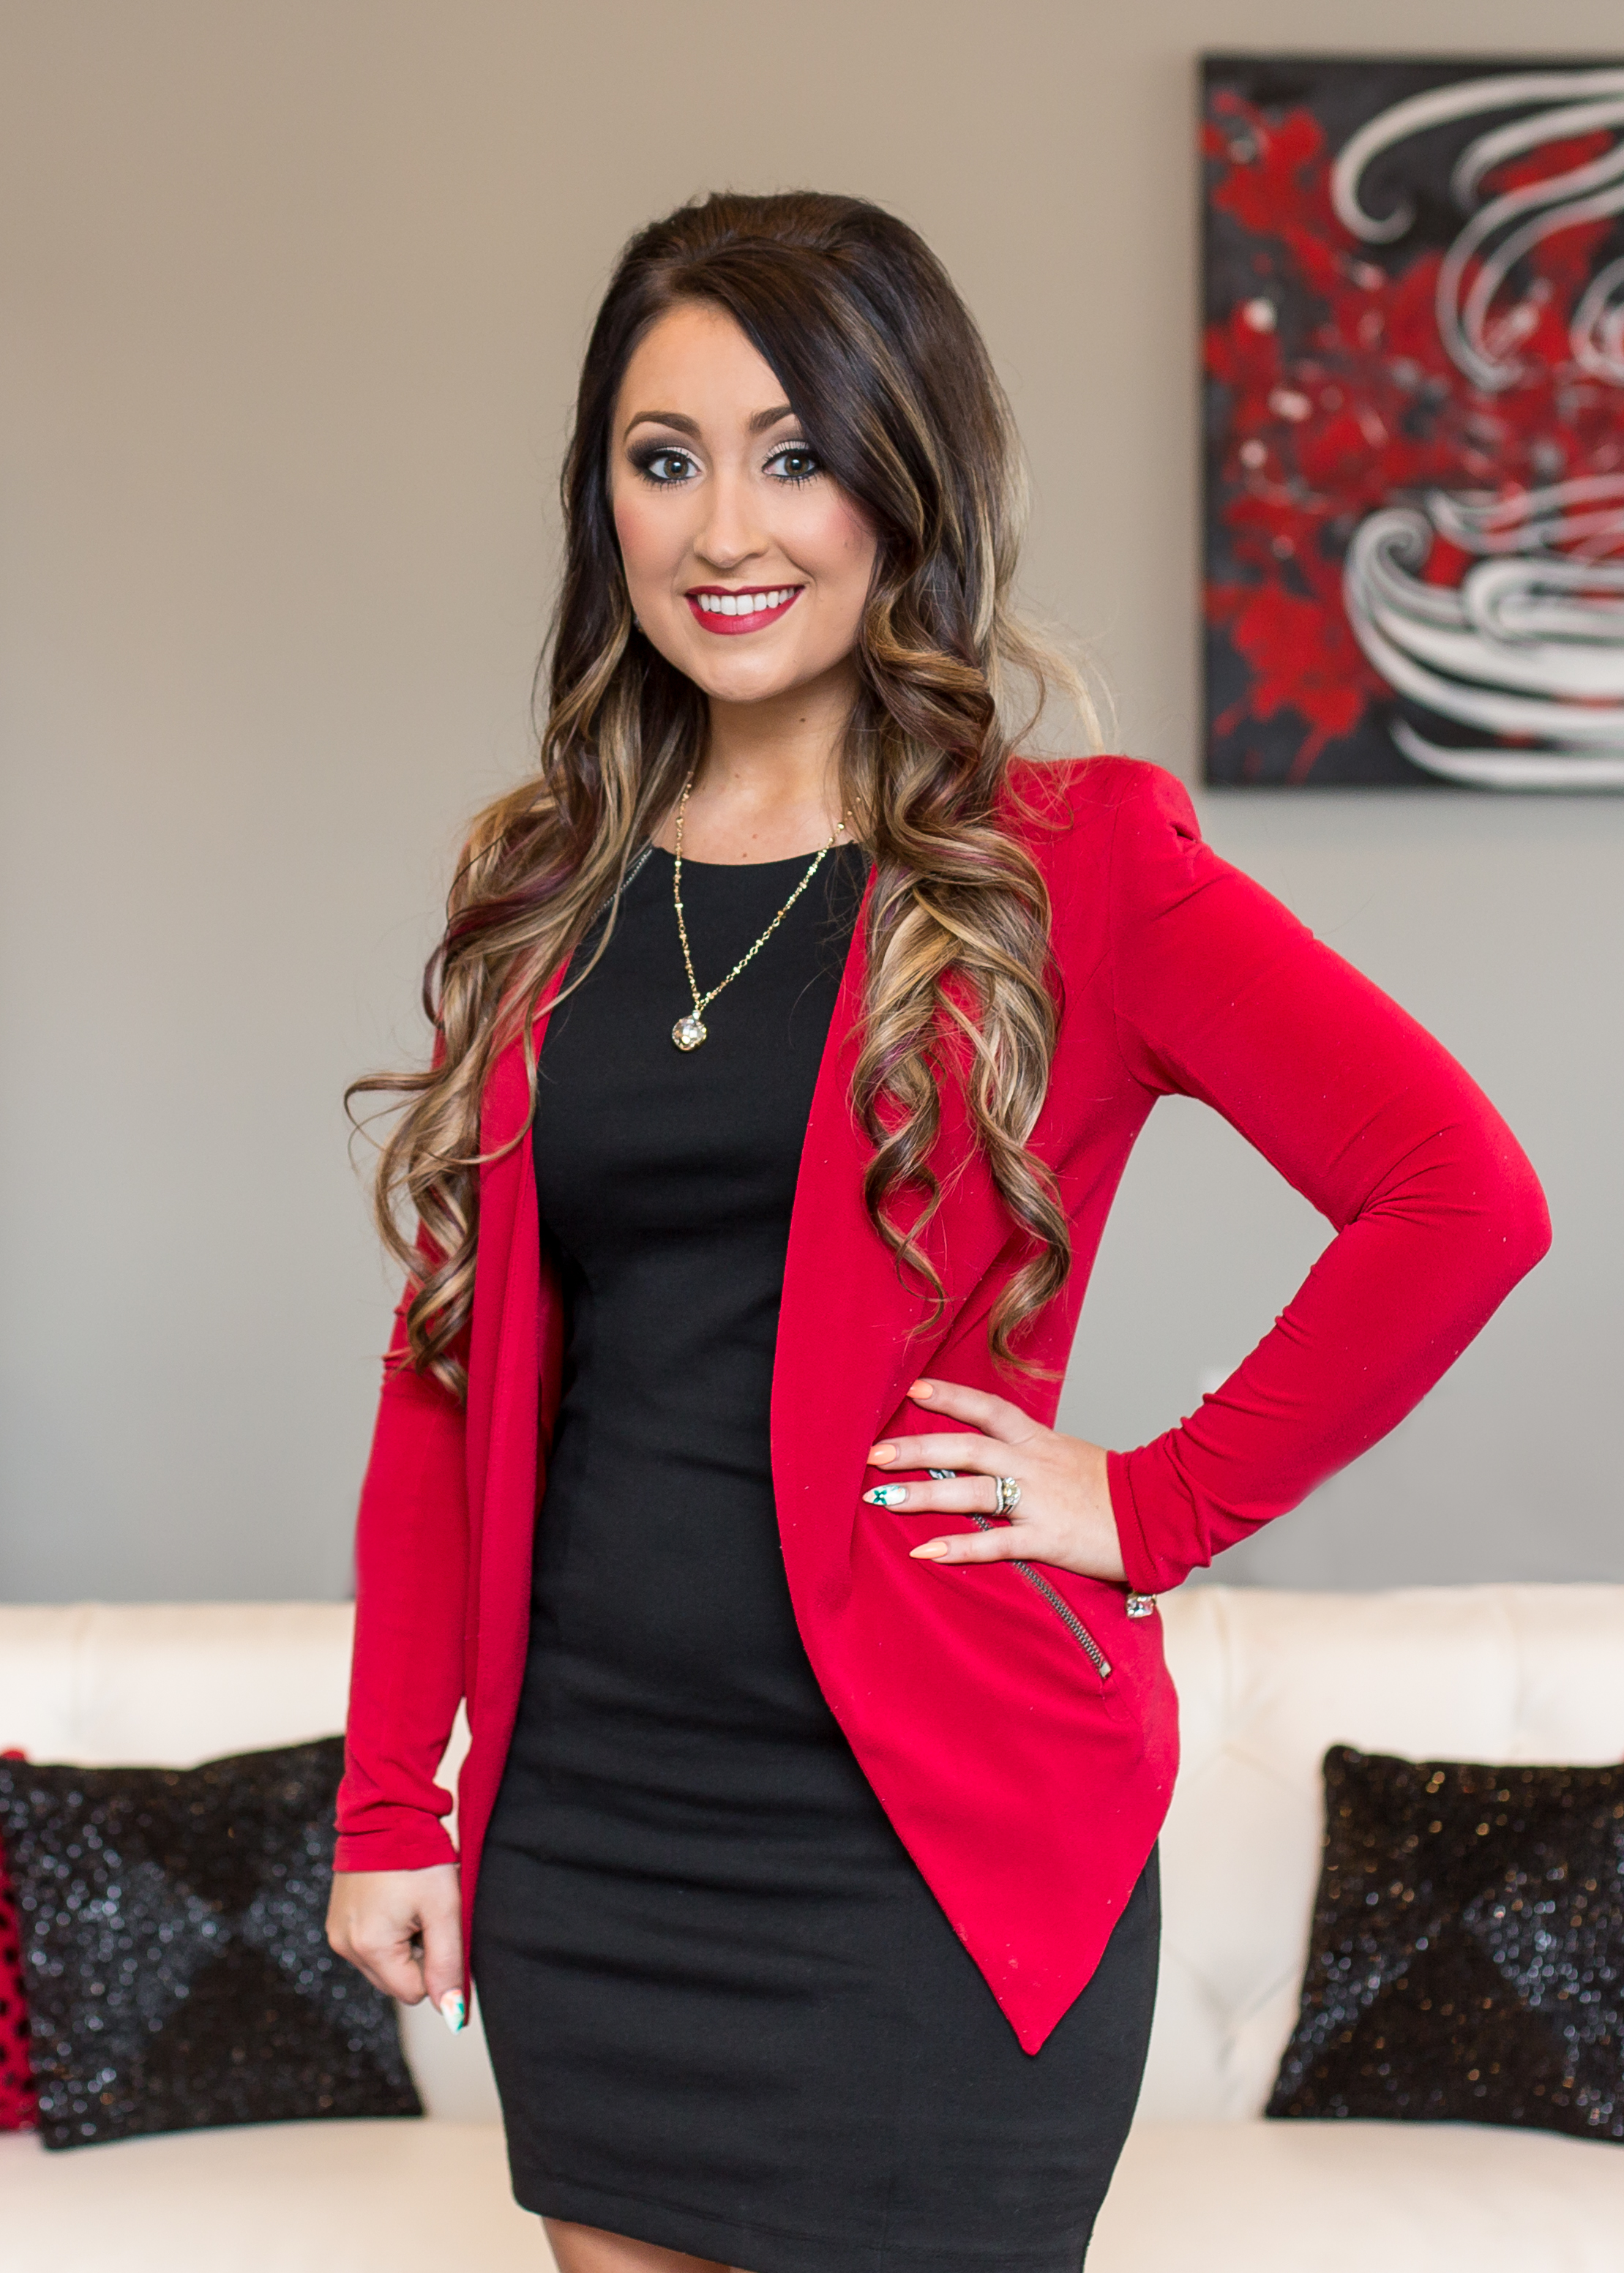 professional hairstylist amber bosarge lord owner of salon rogue - Professional Hairstylist